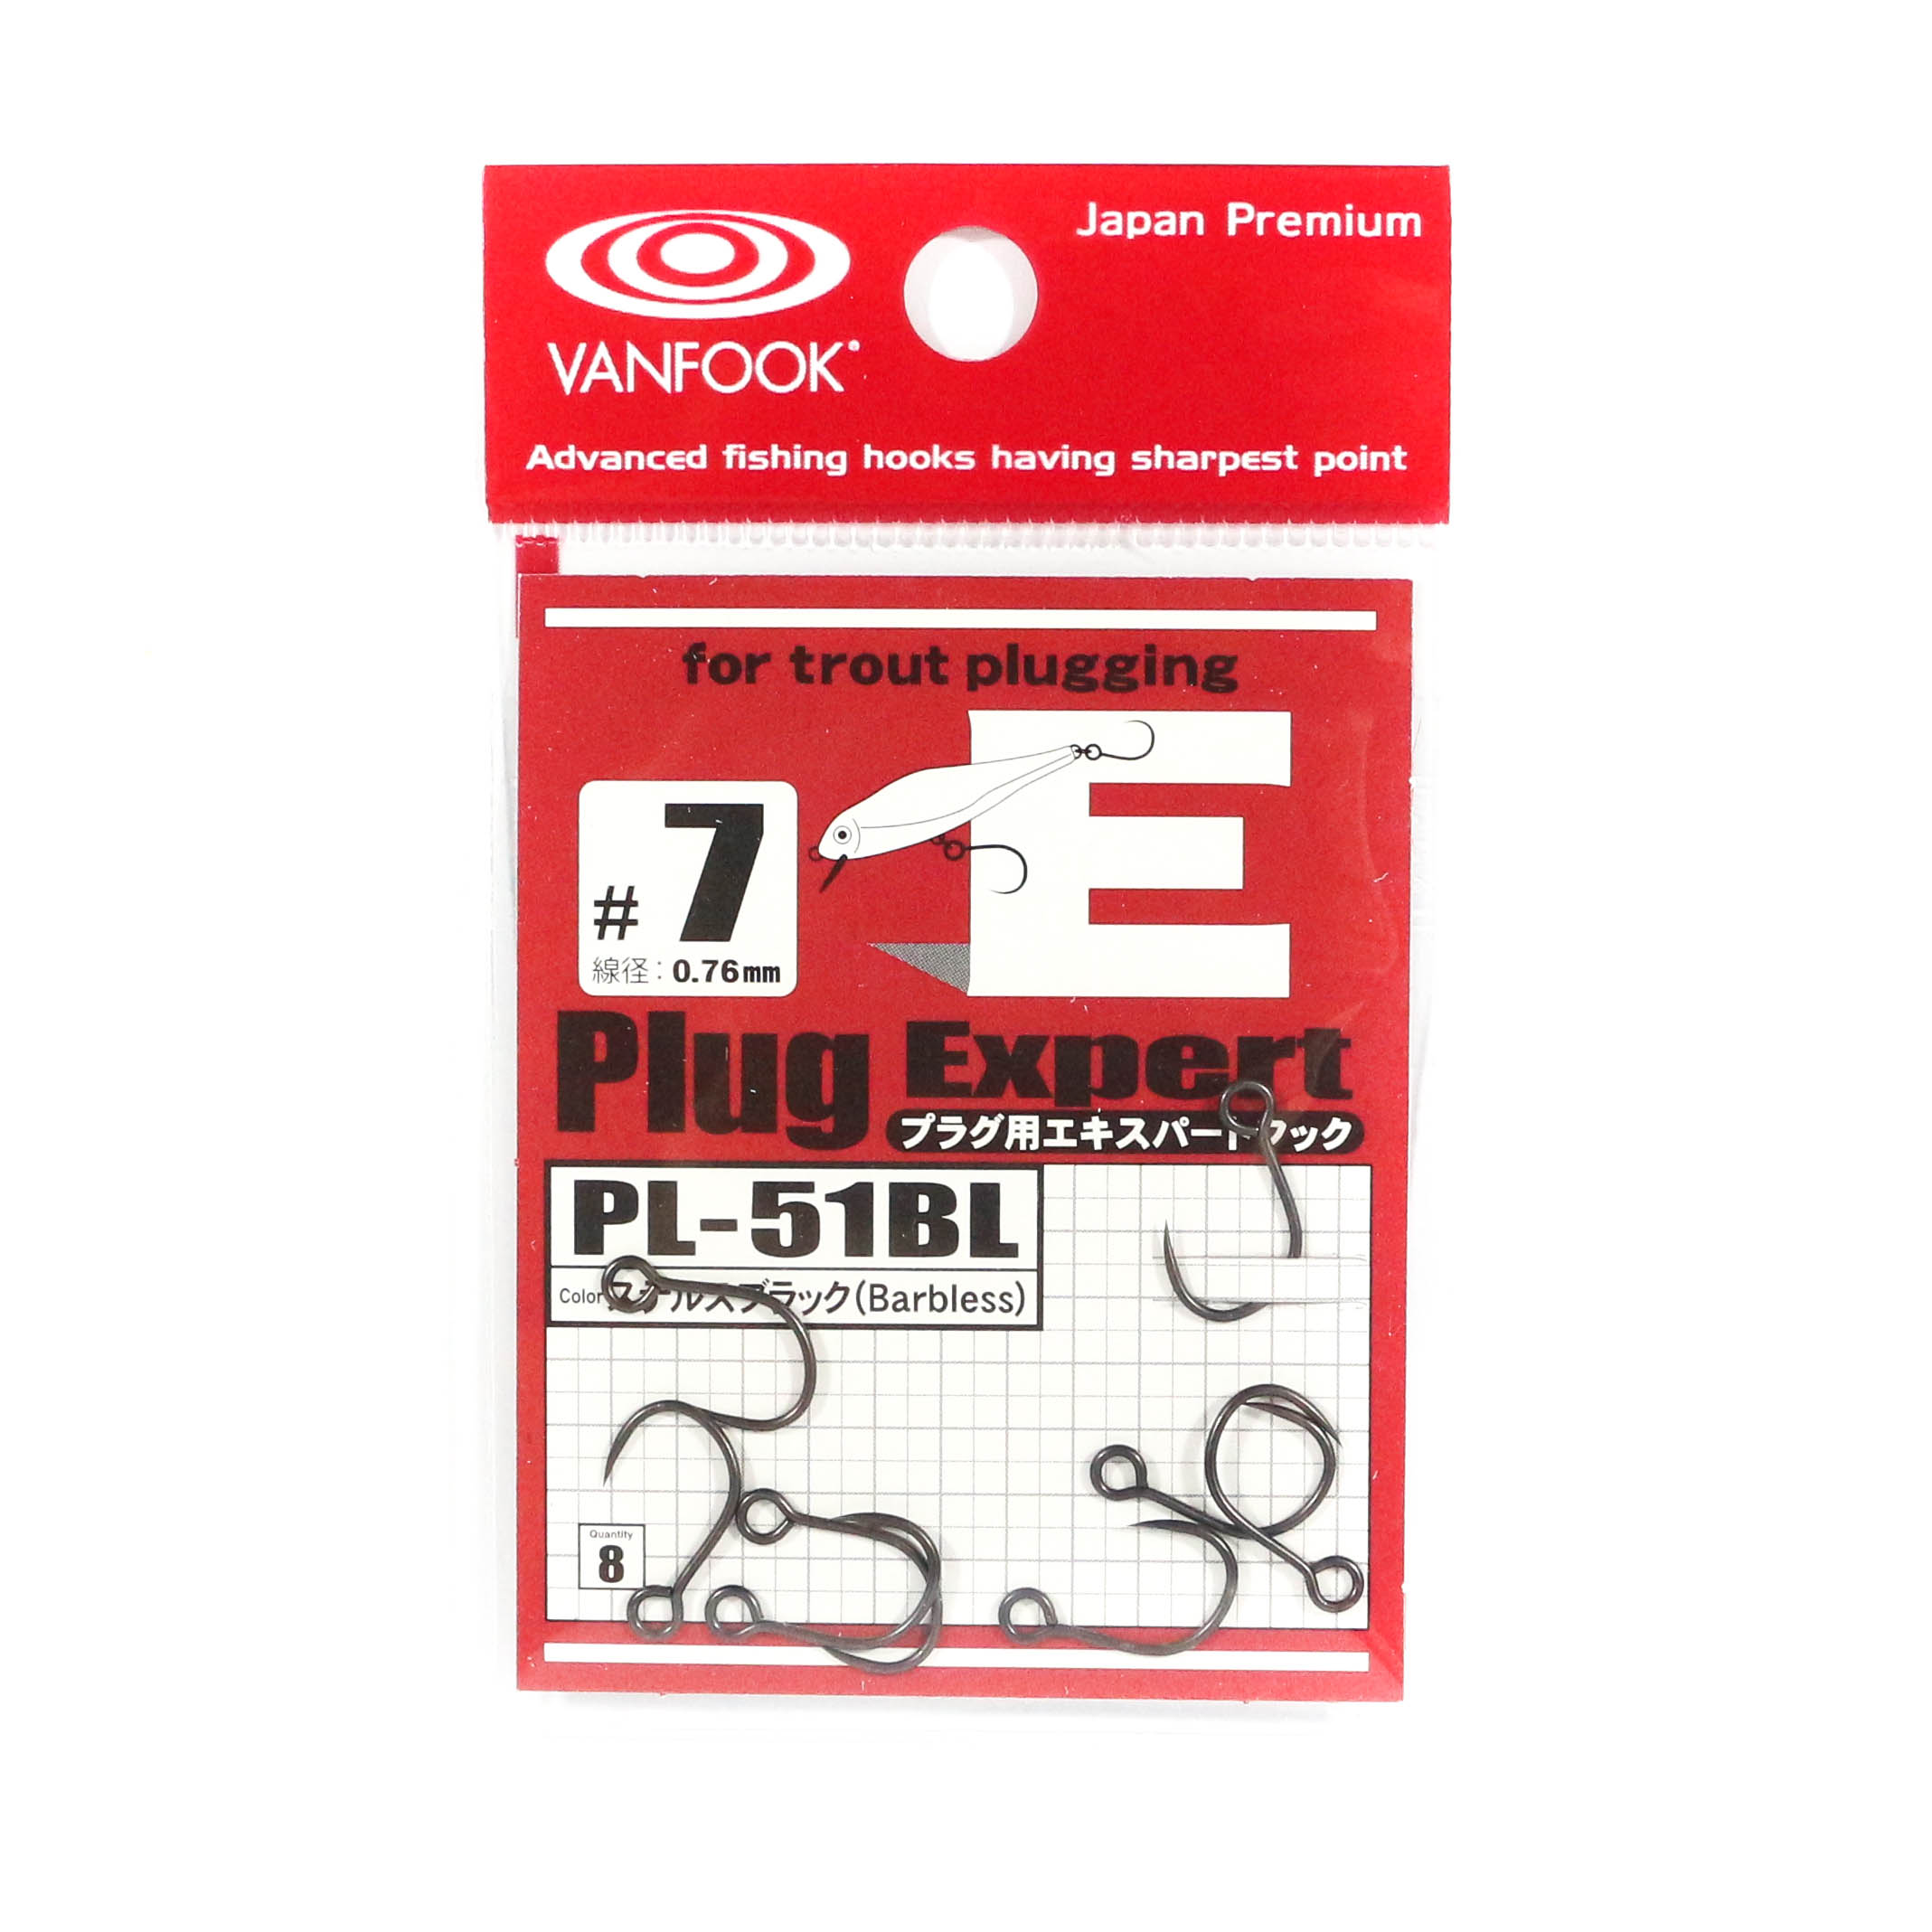 Vanfook PL-51BL Plugging Single Hook Barbless Size 7 (5743)